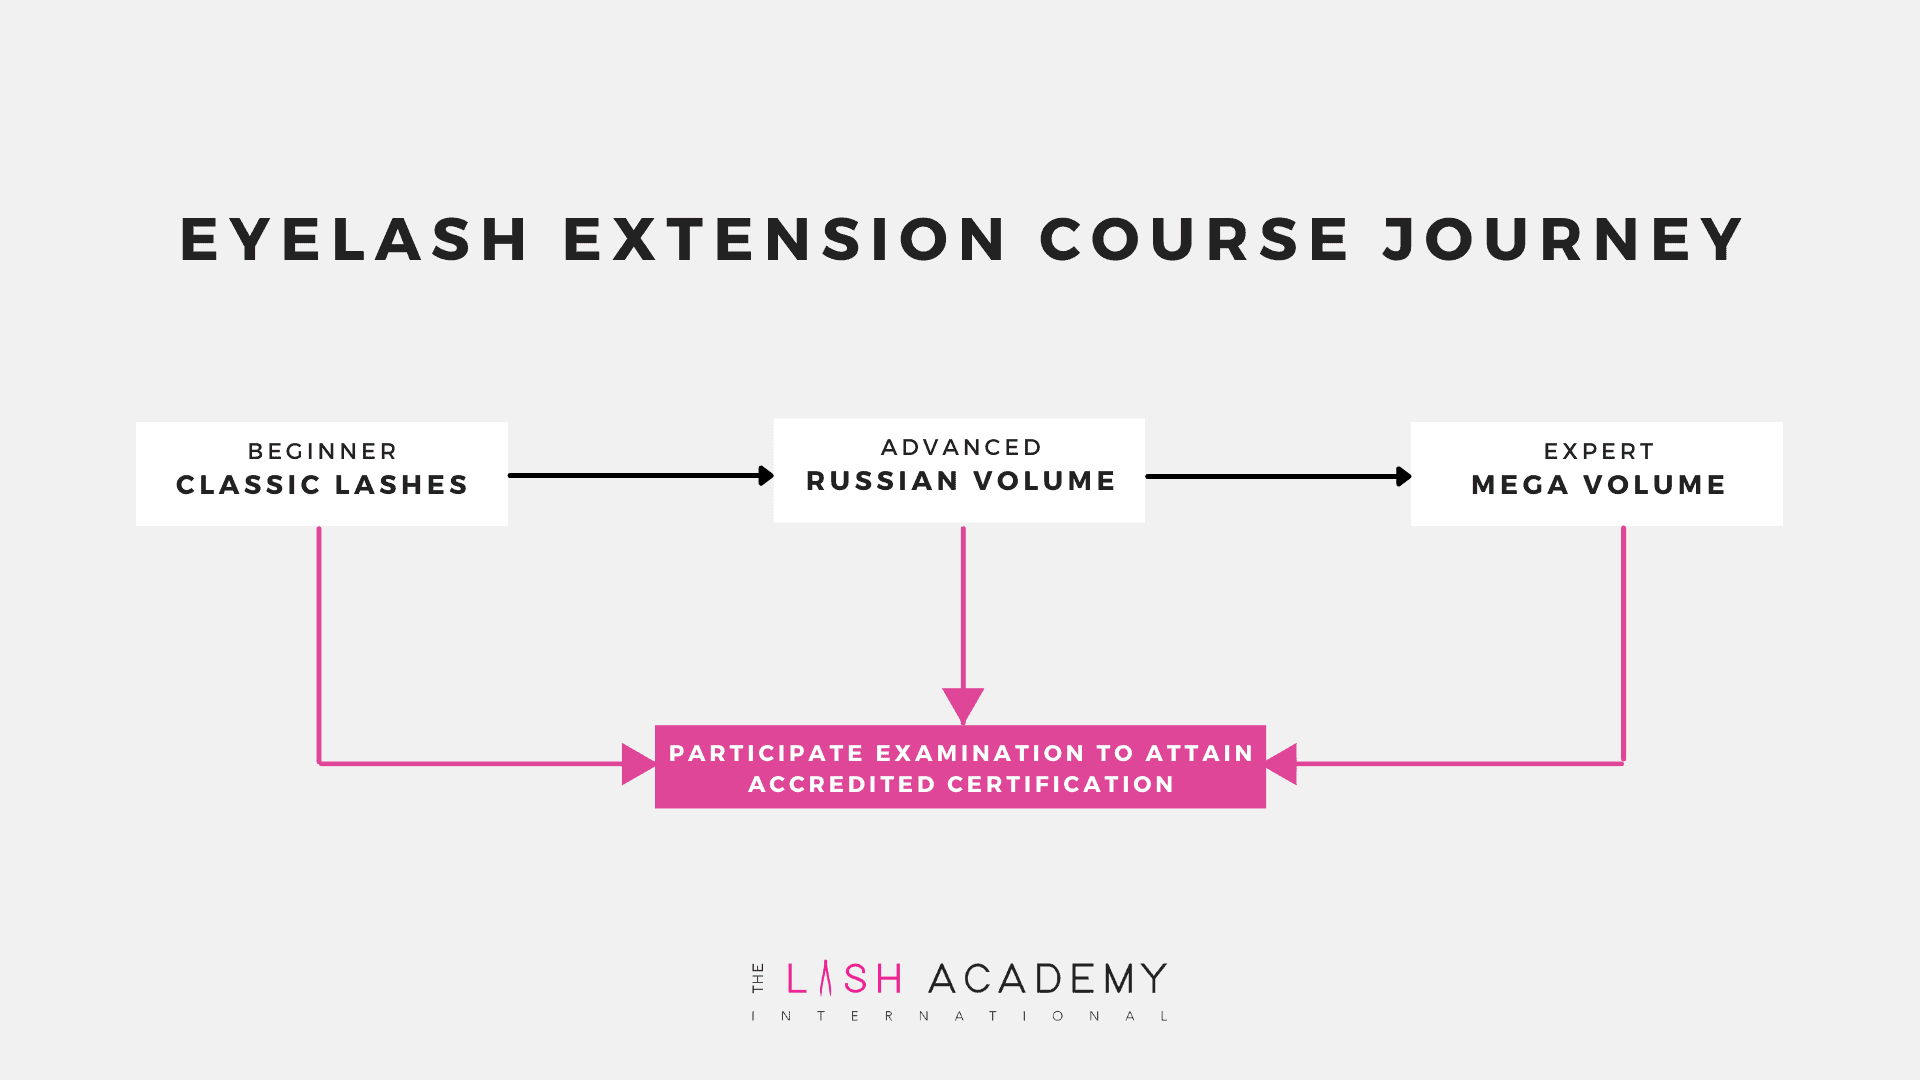 Eyelash Extensions Course Journey The Lash Academy